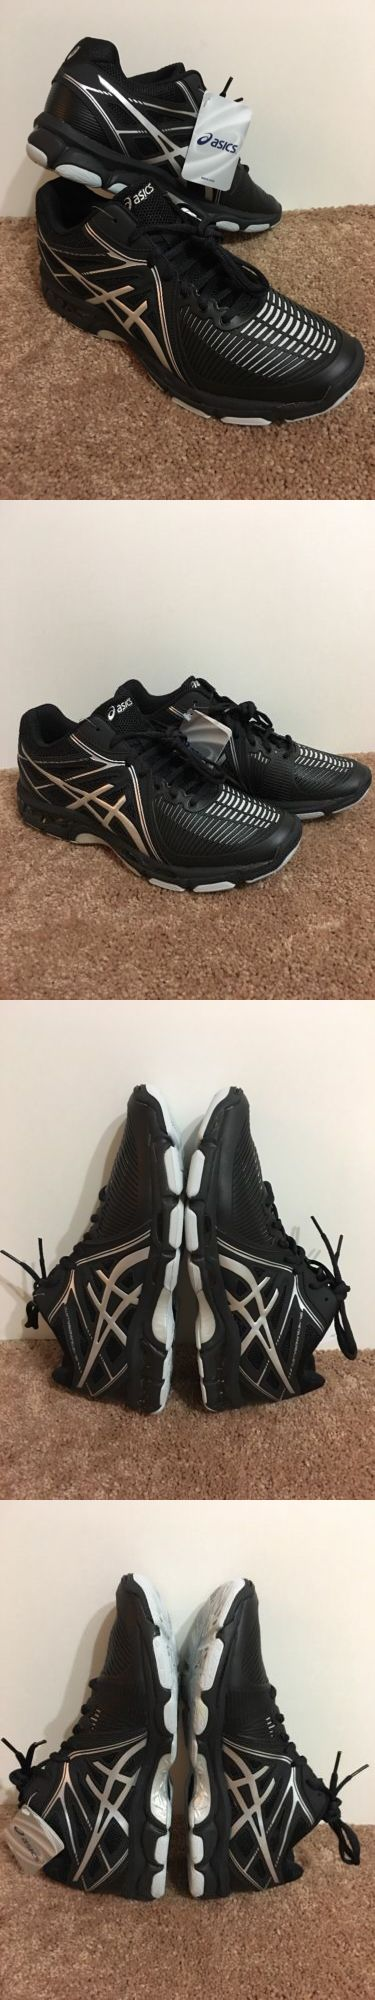 Clothing 159130: Asics Gel Netburnerballistic Mt Mens Volleyball Shoe B508y .9093 Sz 12 Blk/Slv -> BUY IT NOW ONLY: $129.99 on eBay!